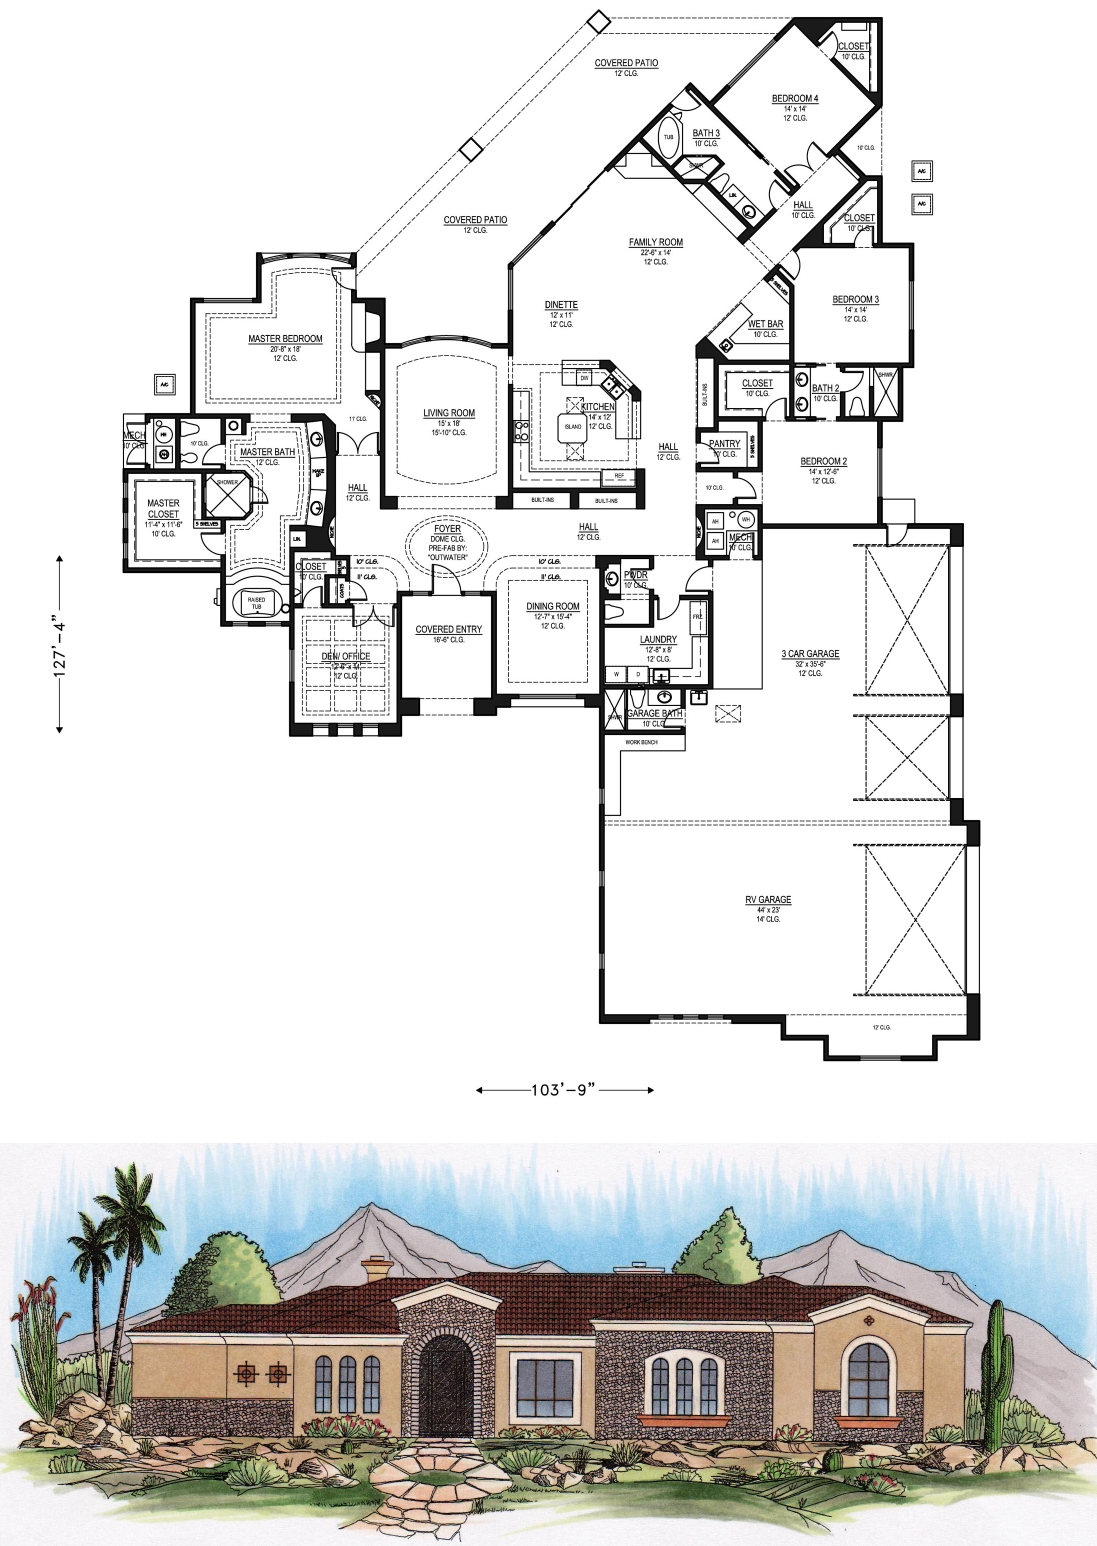 6000 sq ft house plans 4000 sq ft office plan